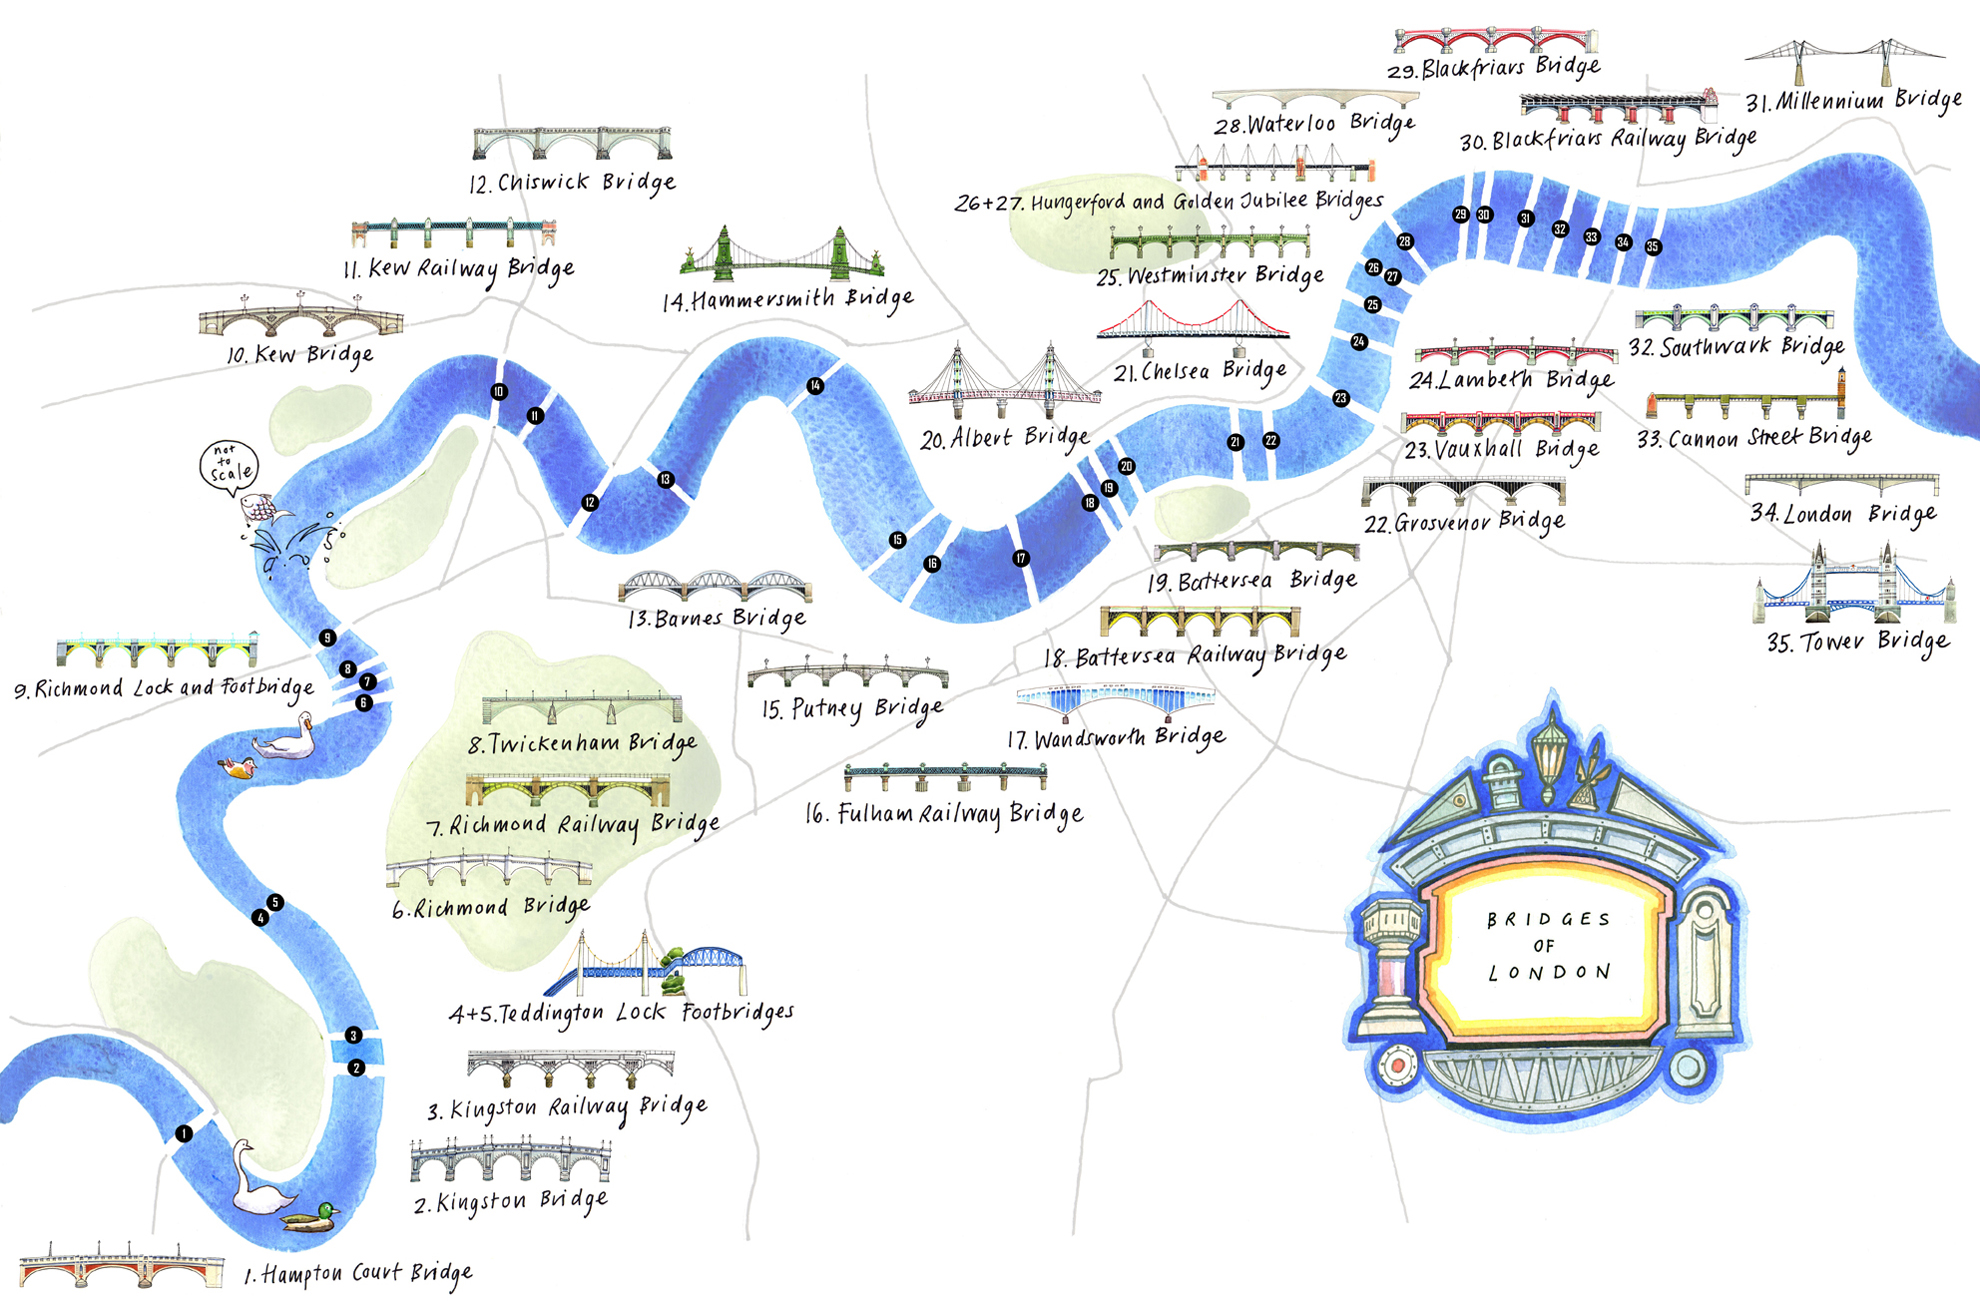 Bridges of London illustration by Lis Watkins